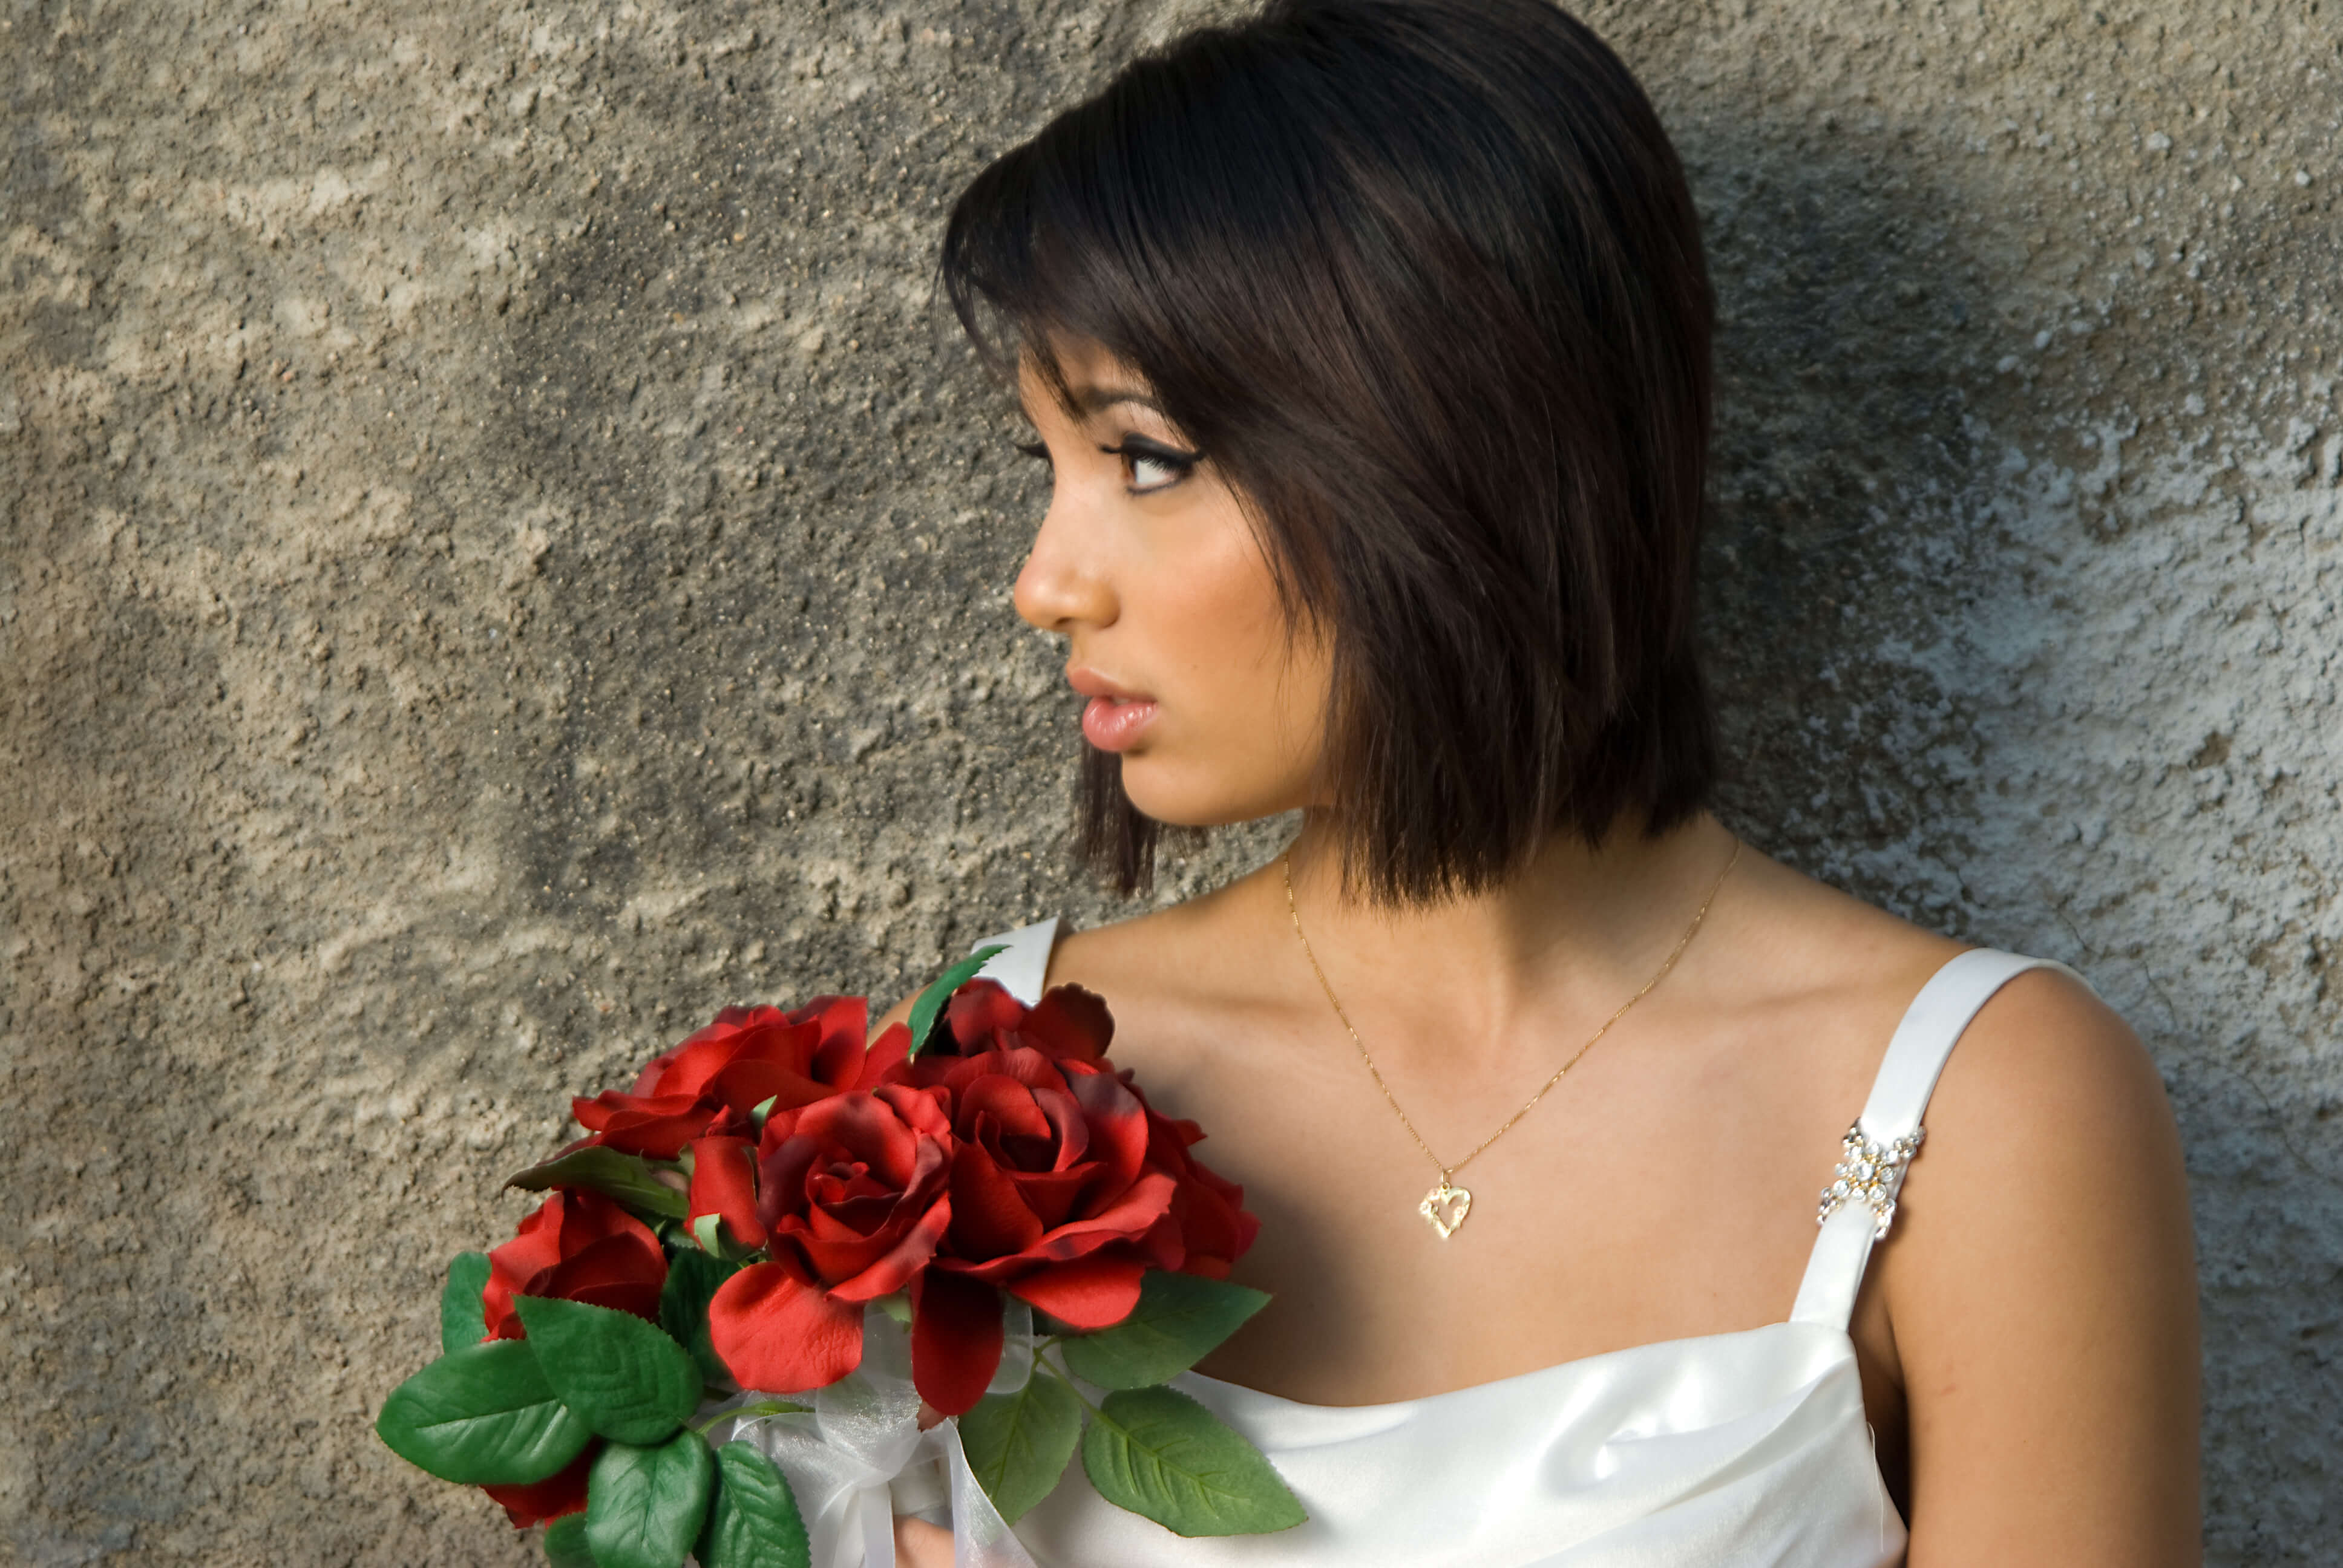 Romantic Wedding Short Haircut for Your Amazing Day! 4